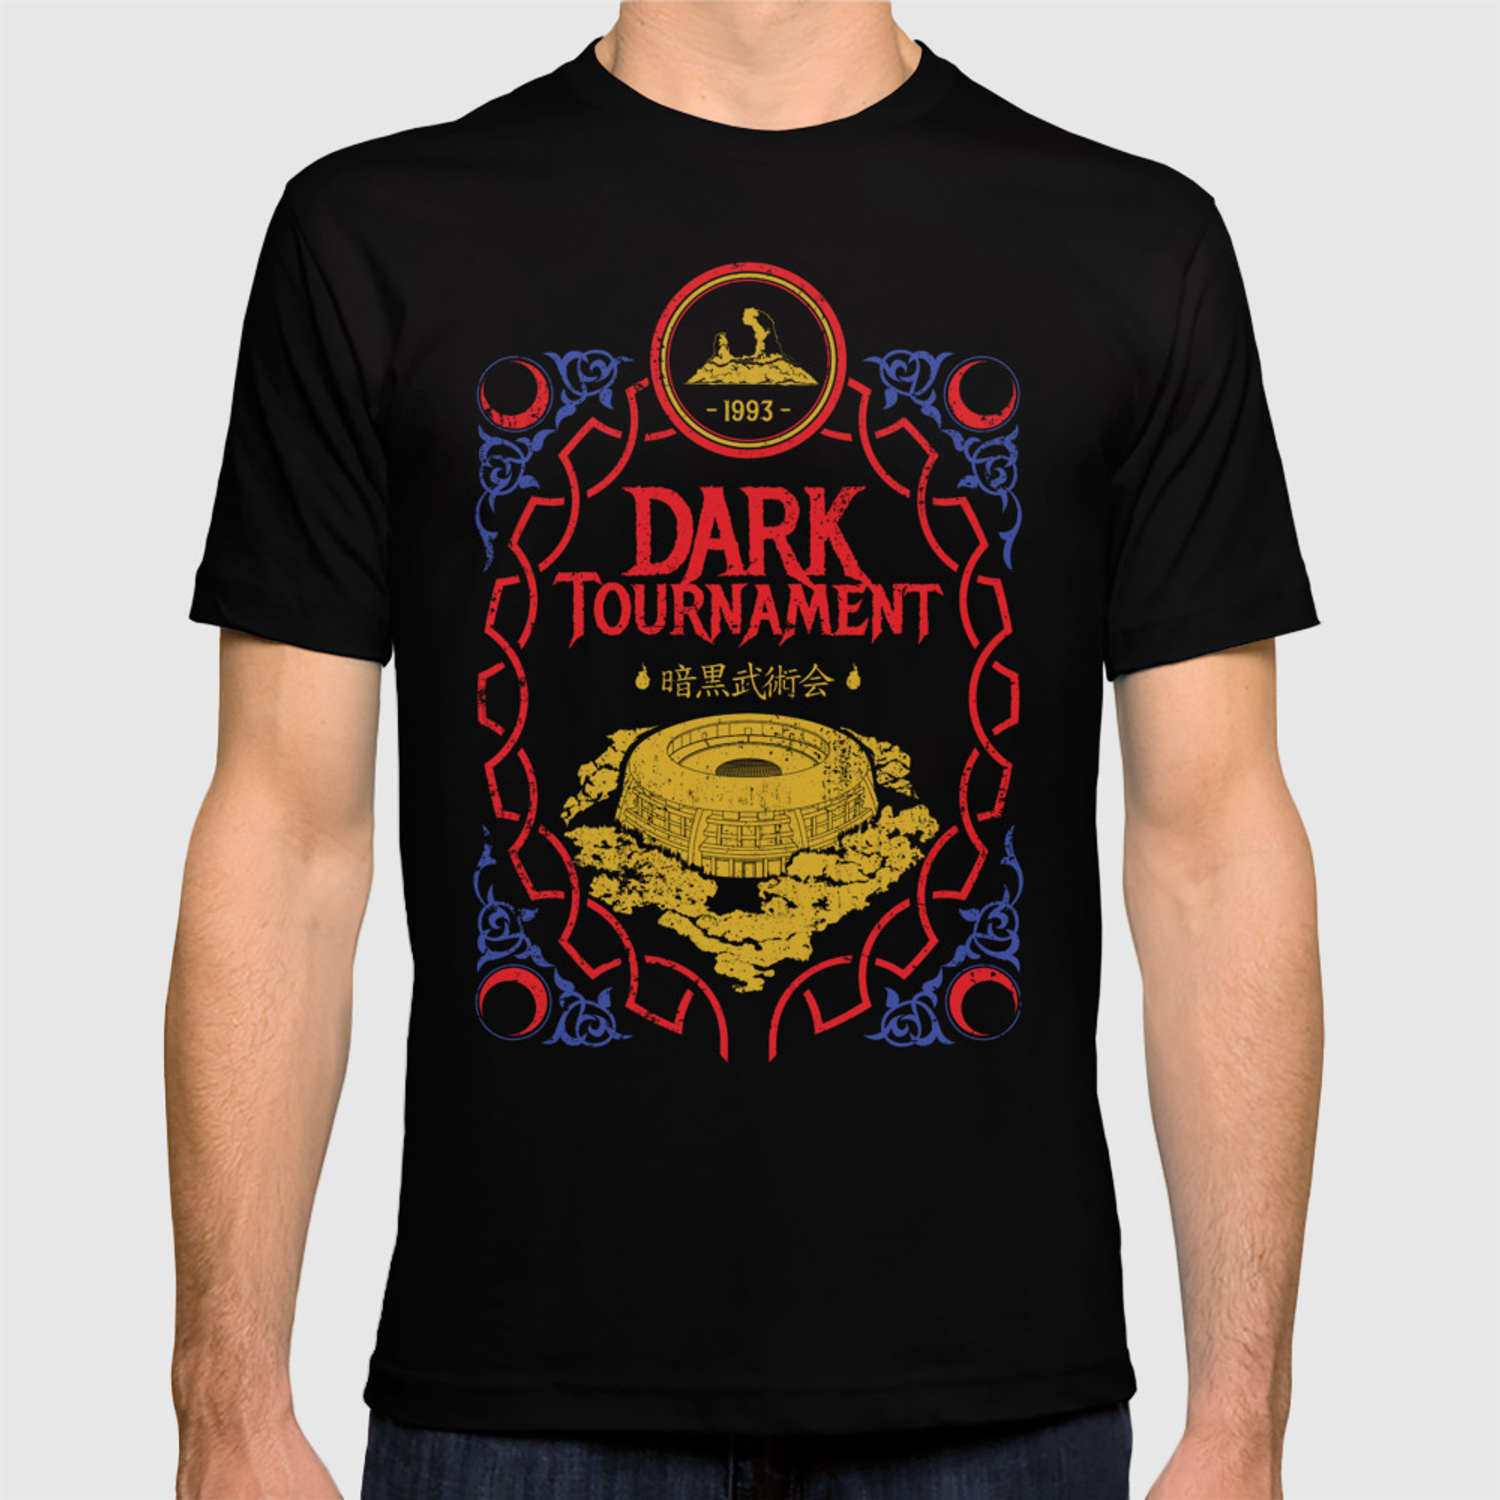 542982fab I Survived the Dark Tournament T-shirt by manoystee | Society6